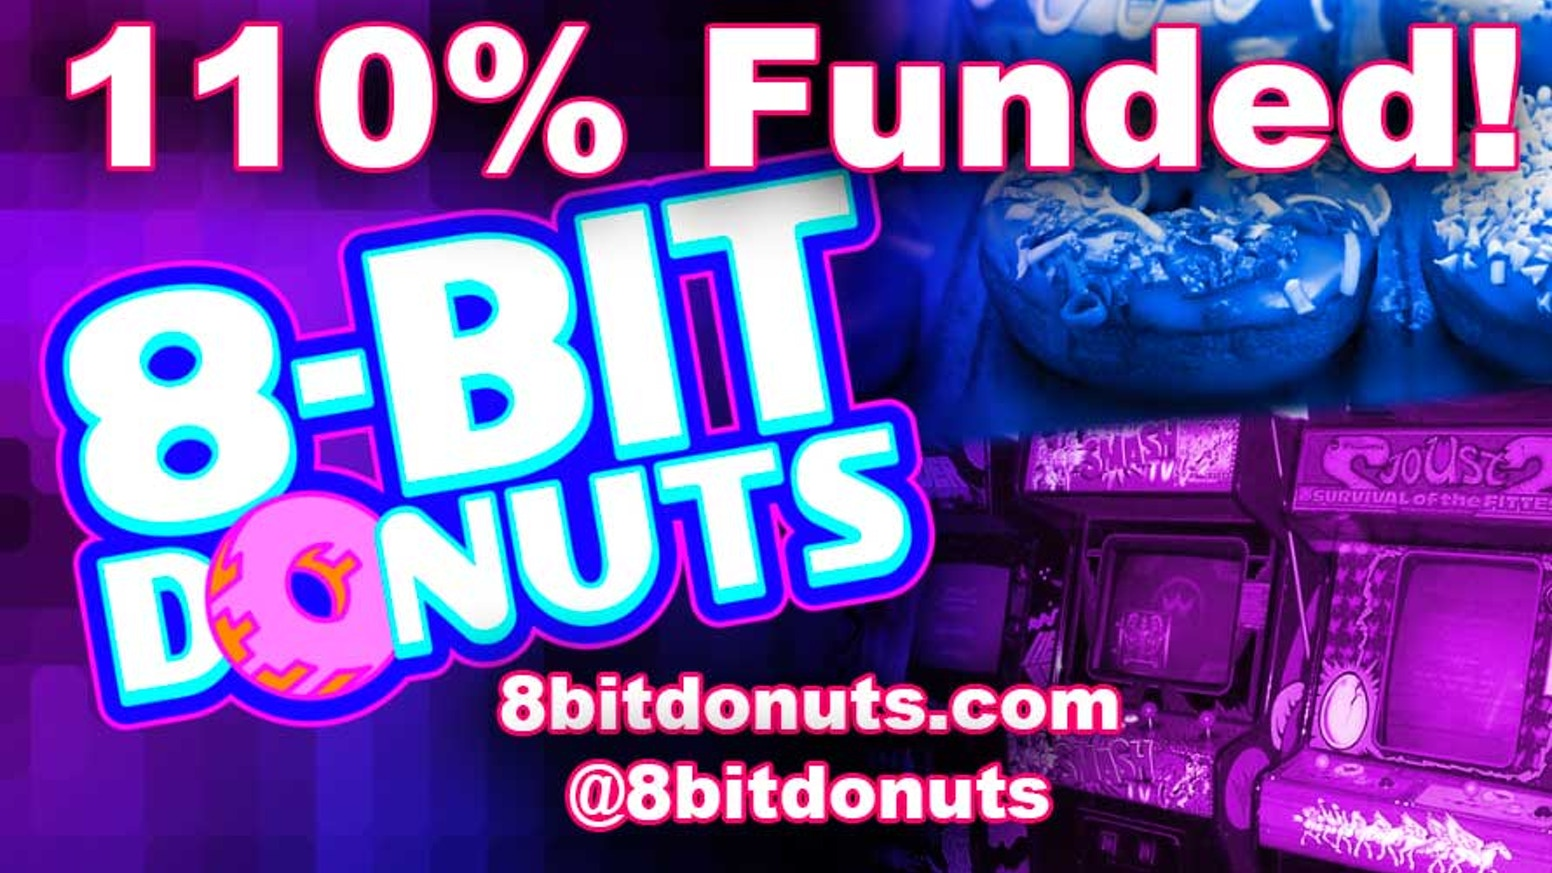 8 Bit Donuts Gourmet Coffee And 80s Arcade Games